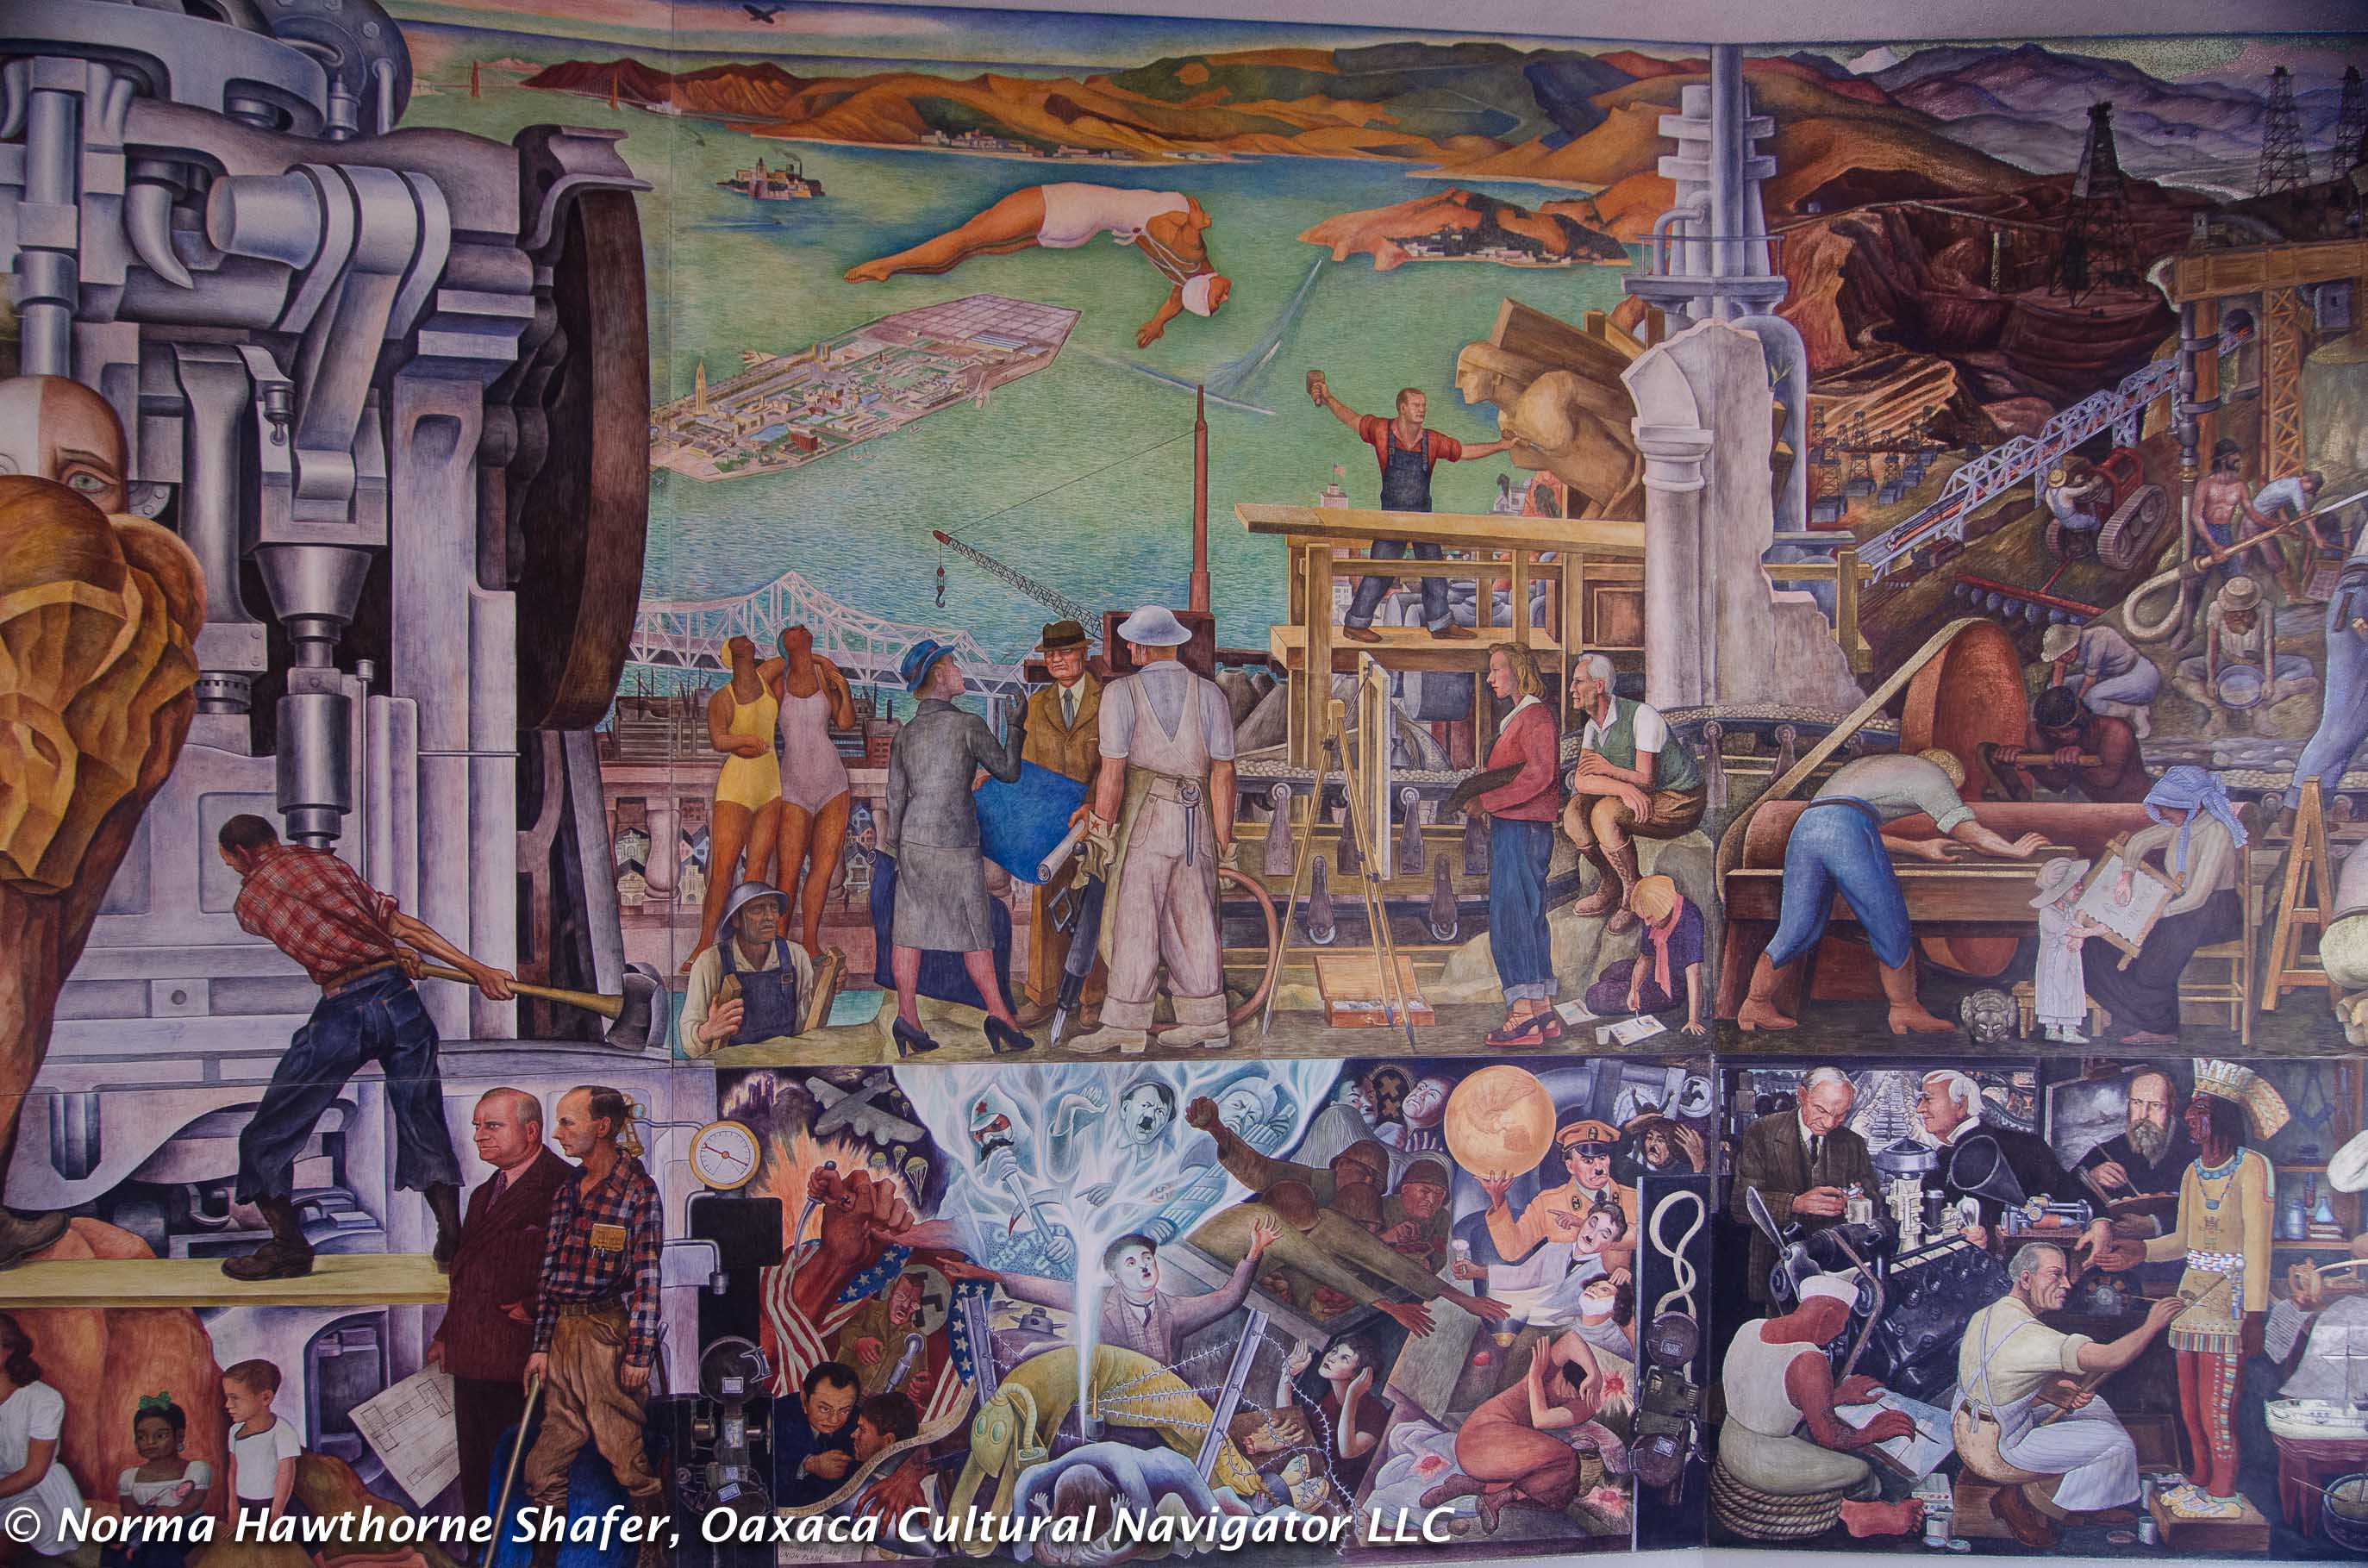 Diego rivera murals in san francisco critical guide for for Diego rivera mural in san francisco